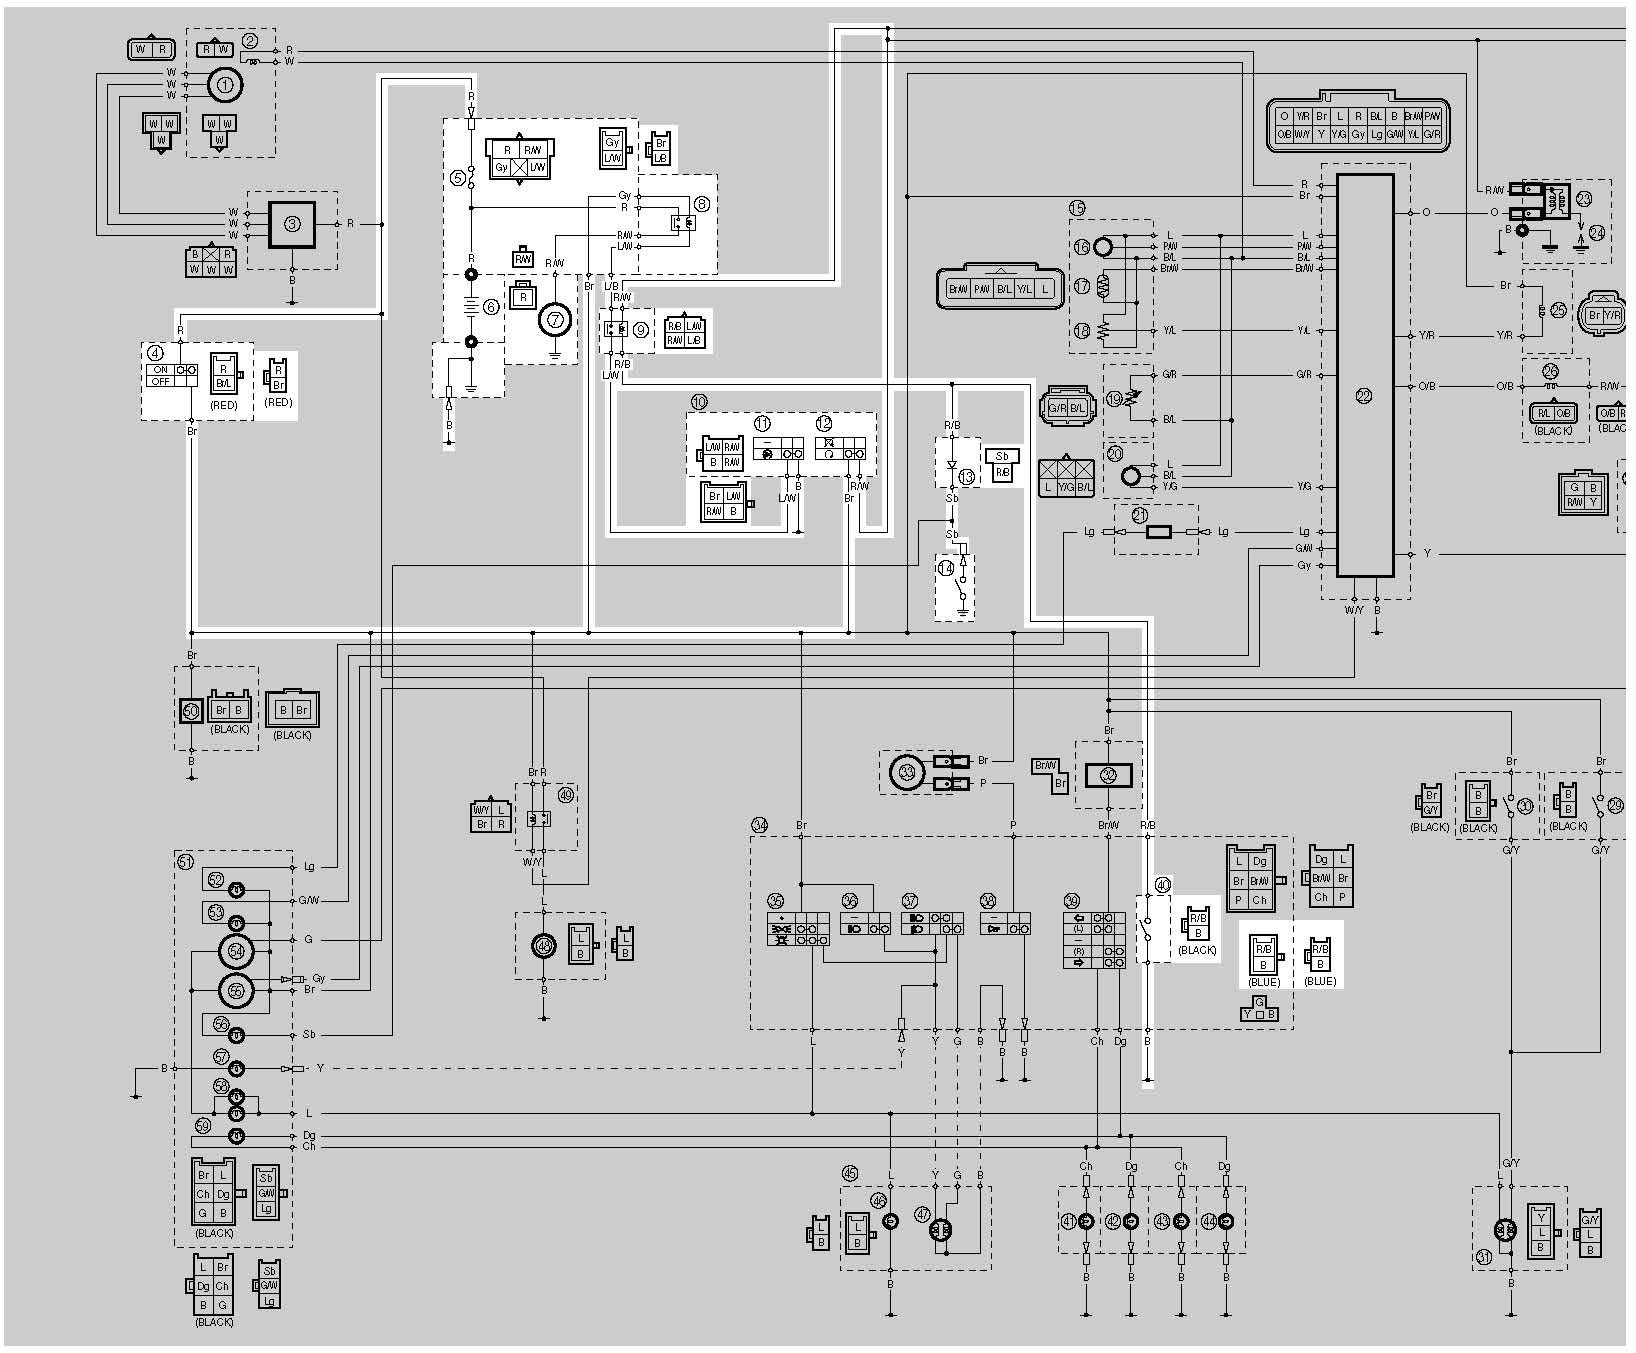 2qf Fuse Box Diagram 2002 Ford F 150 1995 Ford F-150 Fuse